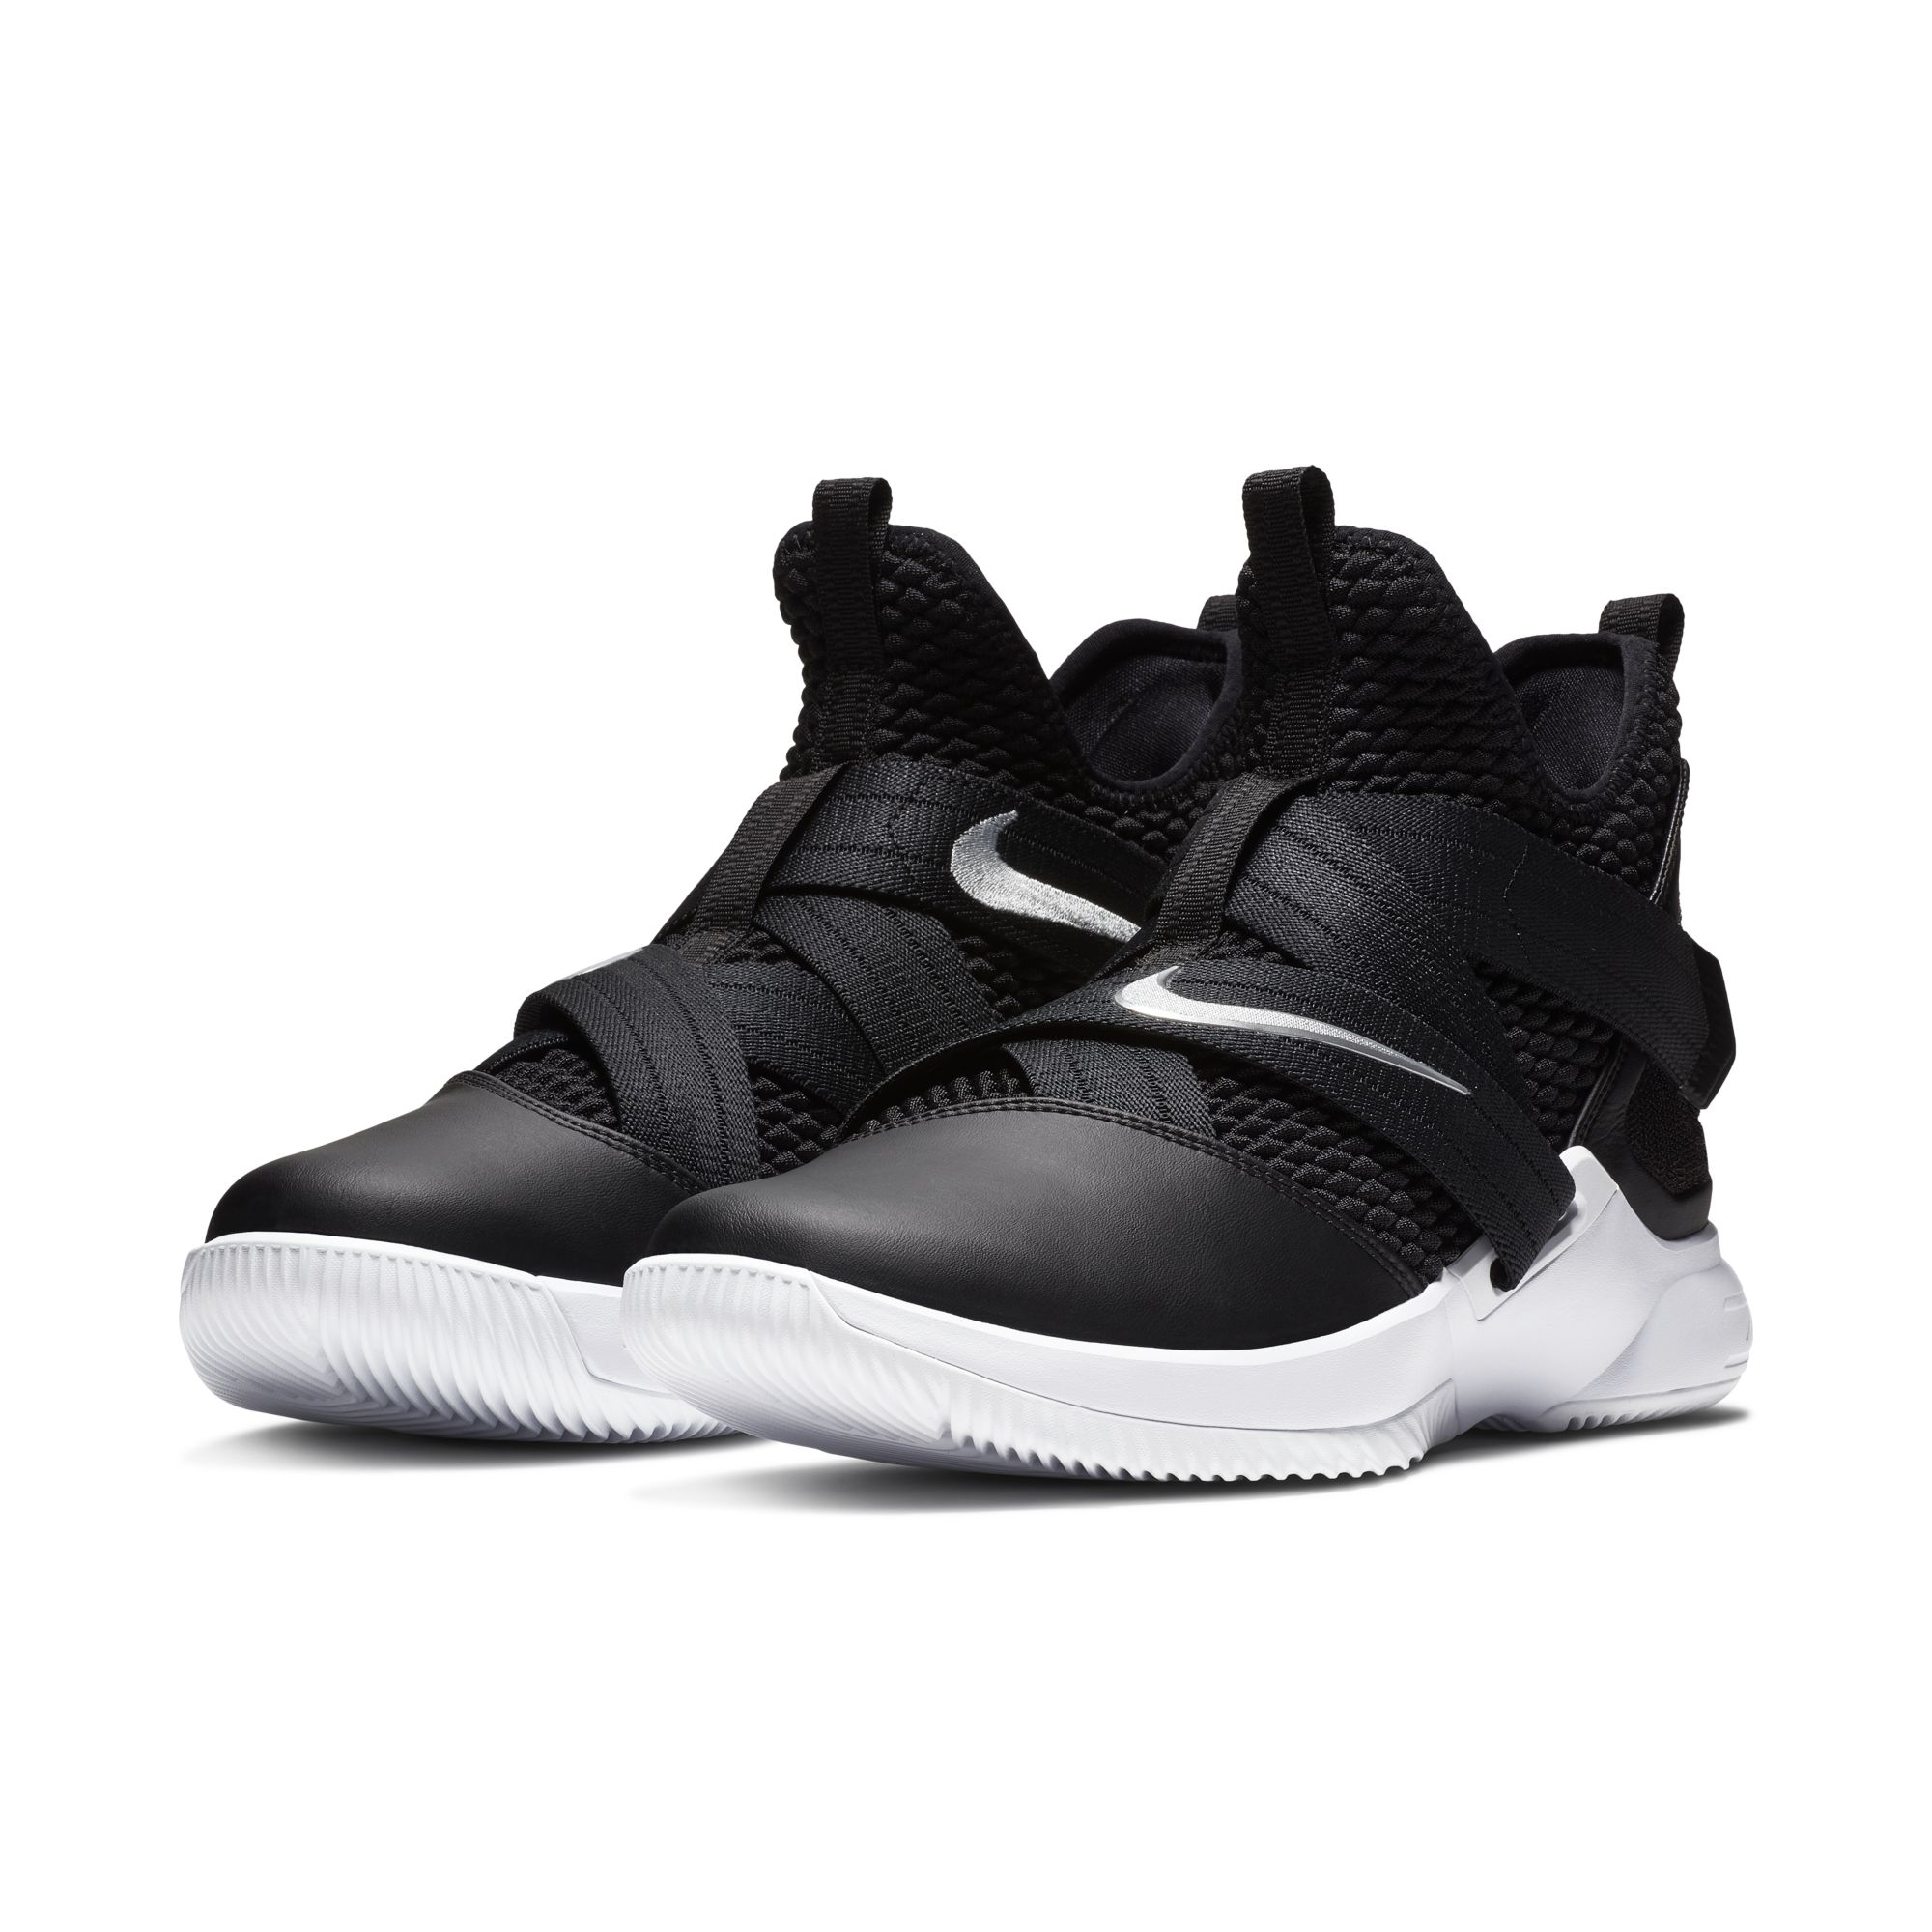 new arrival e6731 c99a3 LeBron's Latest Soldier 12 Arrives in Team Colorways for ...